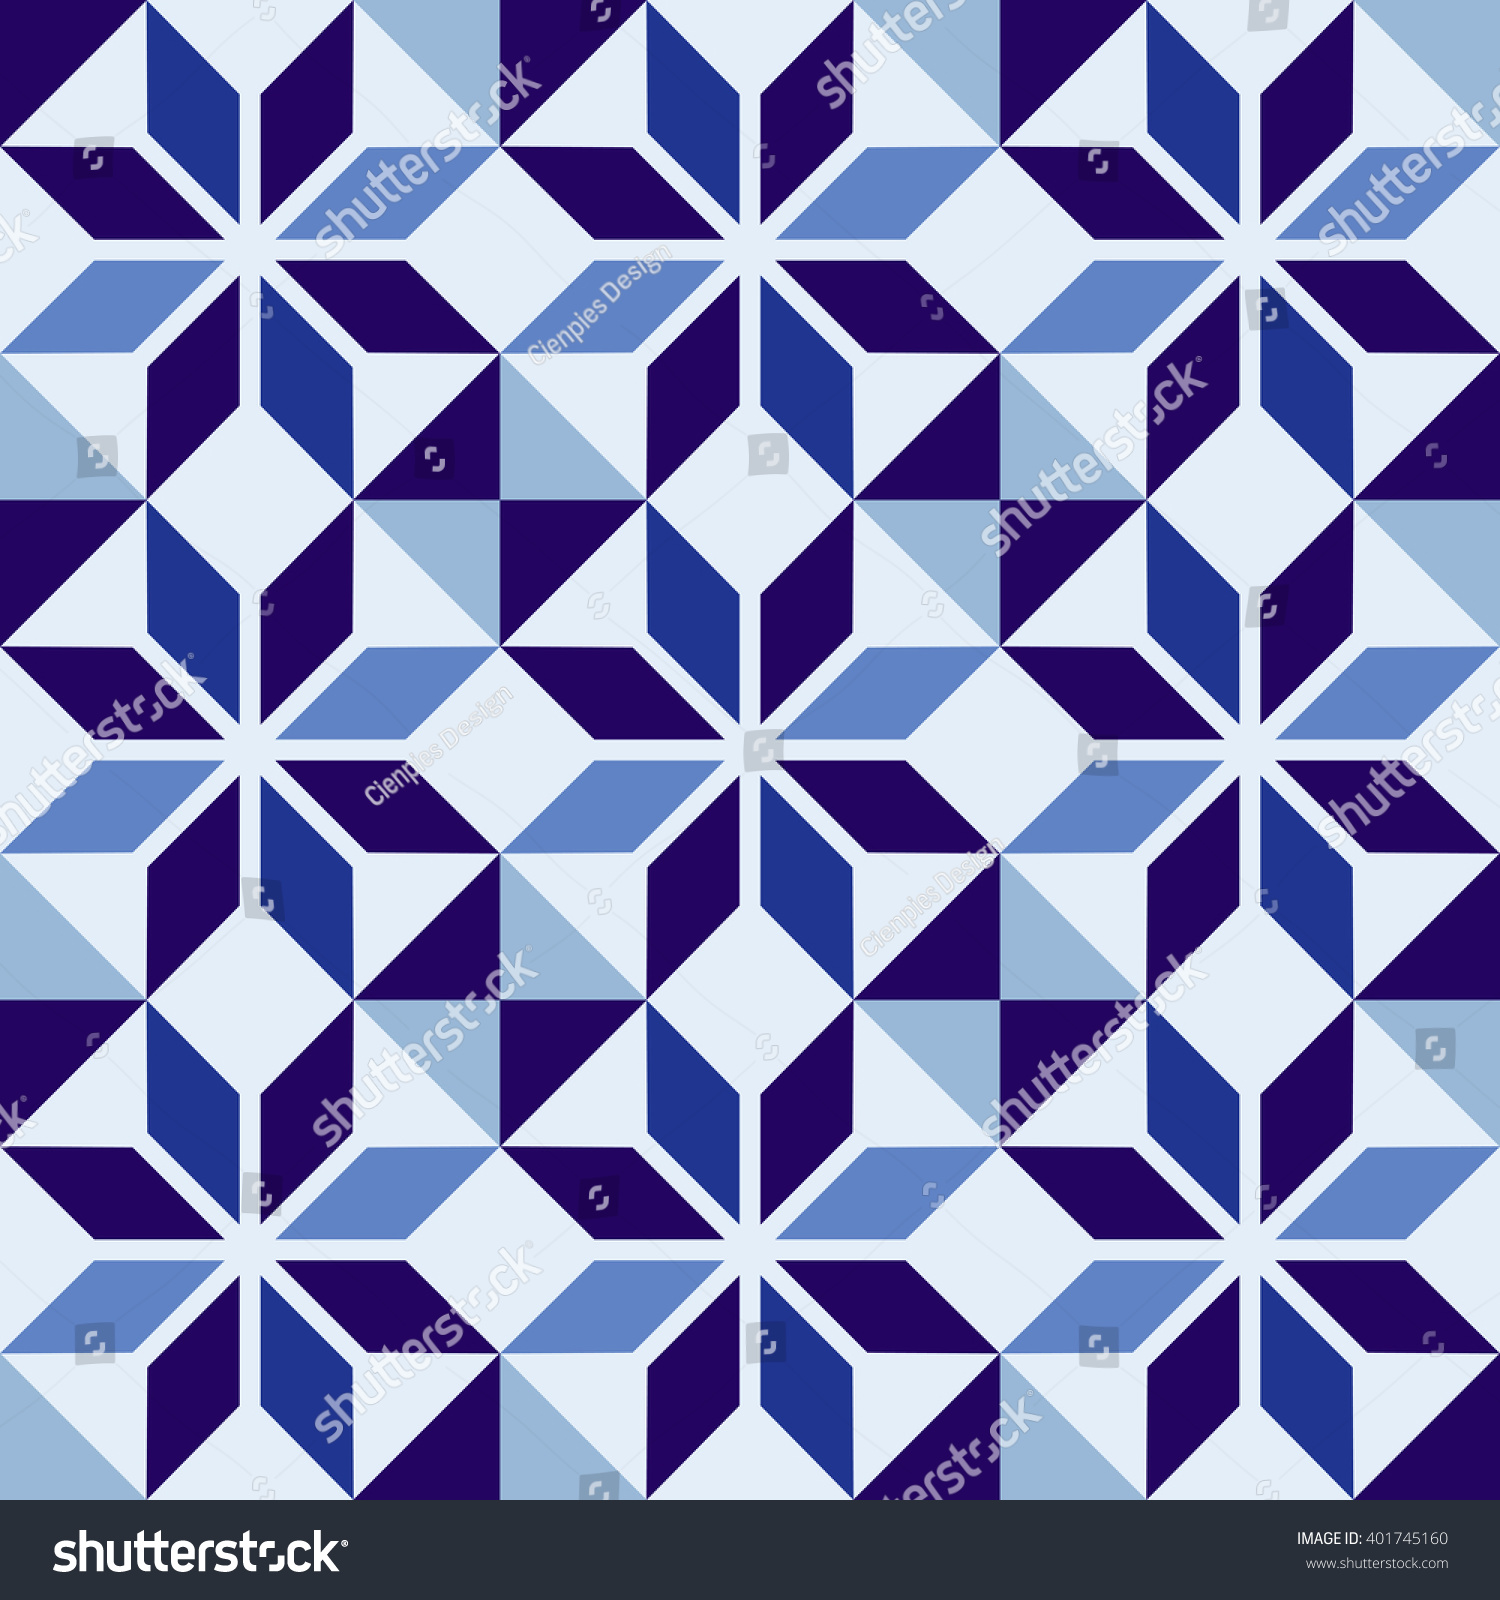 Classic Ceramic Mosaic Tile Seamless Pattern Stock Vector (2018 ...